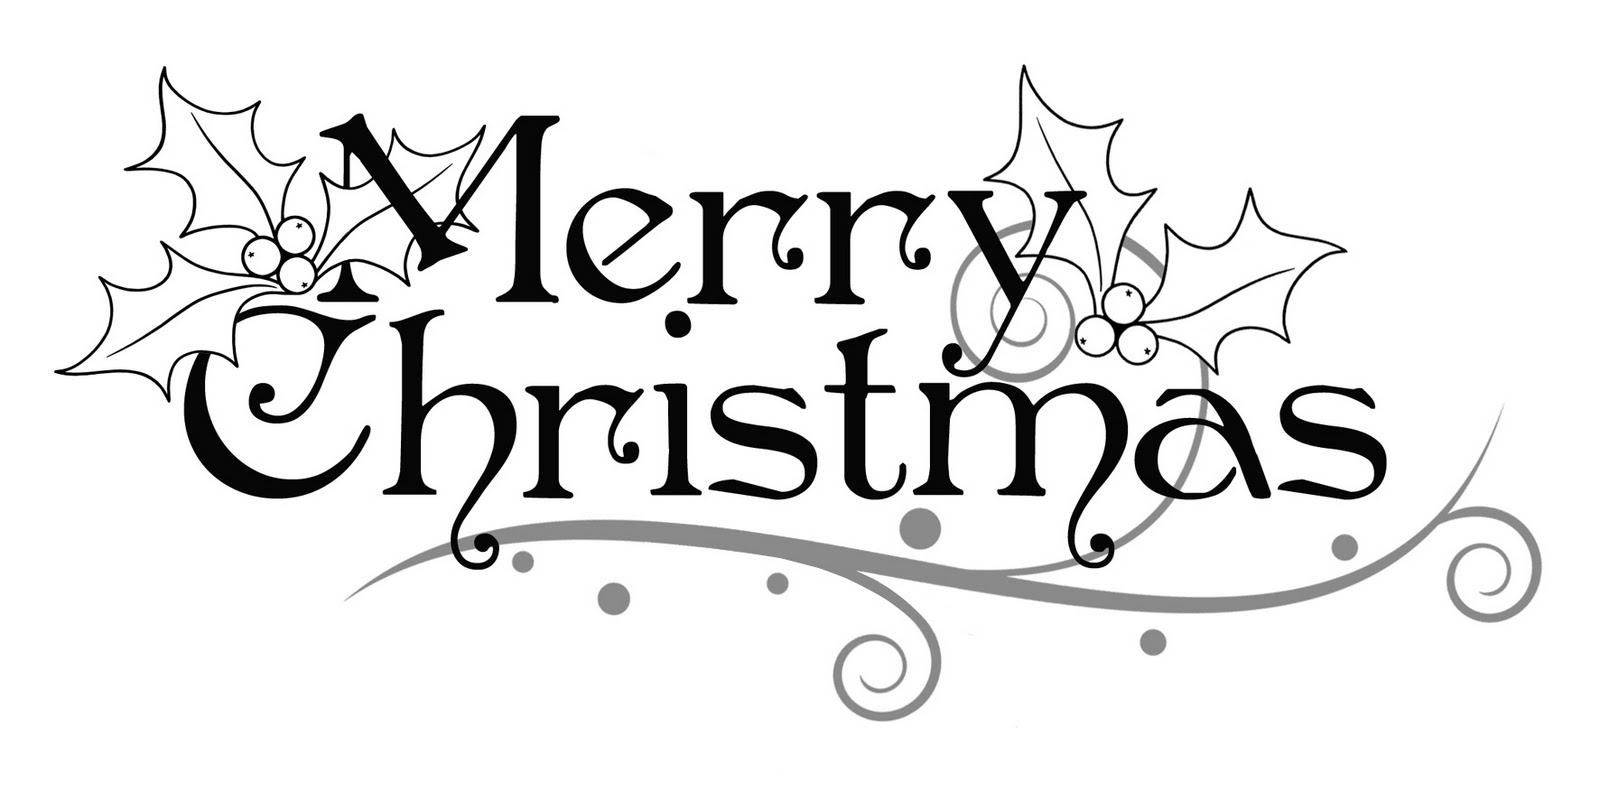 Christian merry christmas clipart free download best christian 1600x791 2014 page 4 merry christmas amp happy new year arts voltagebd Image collections